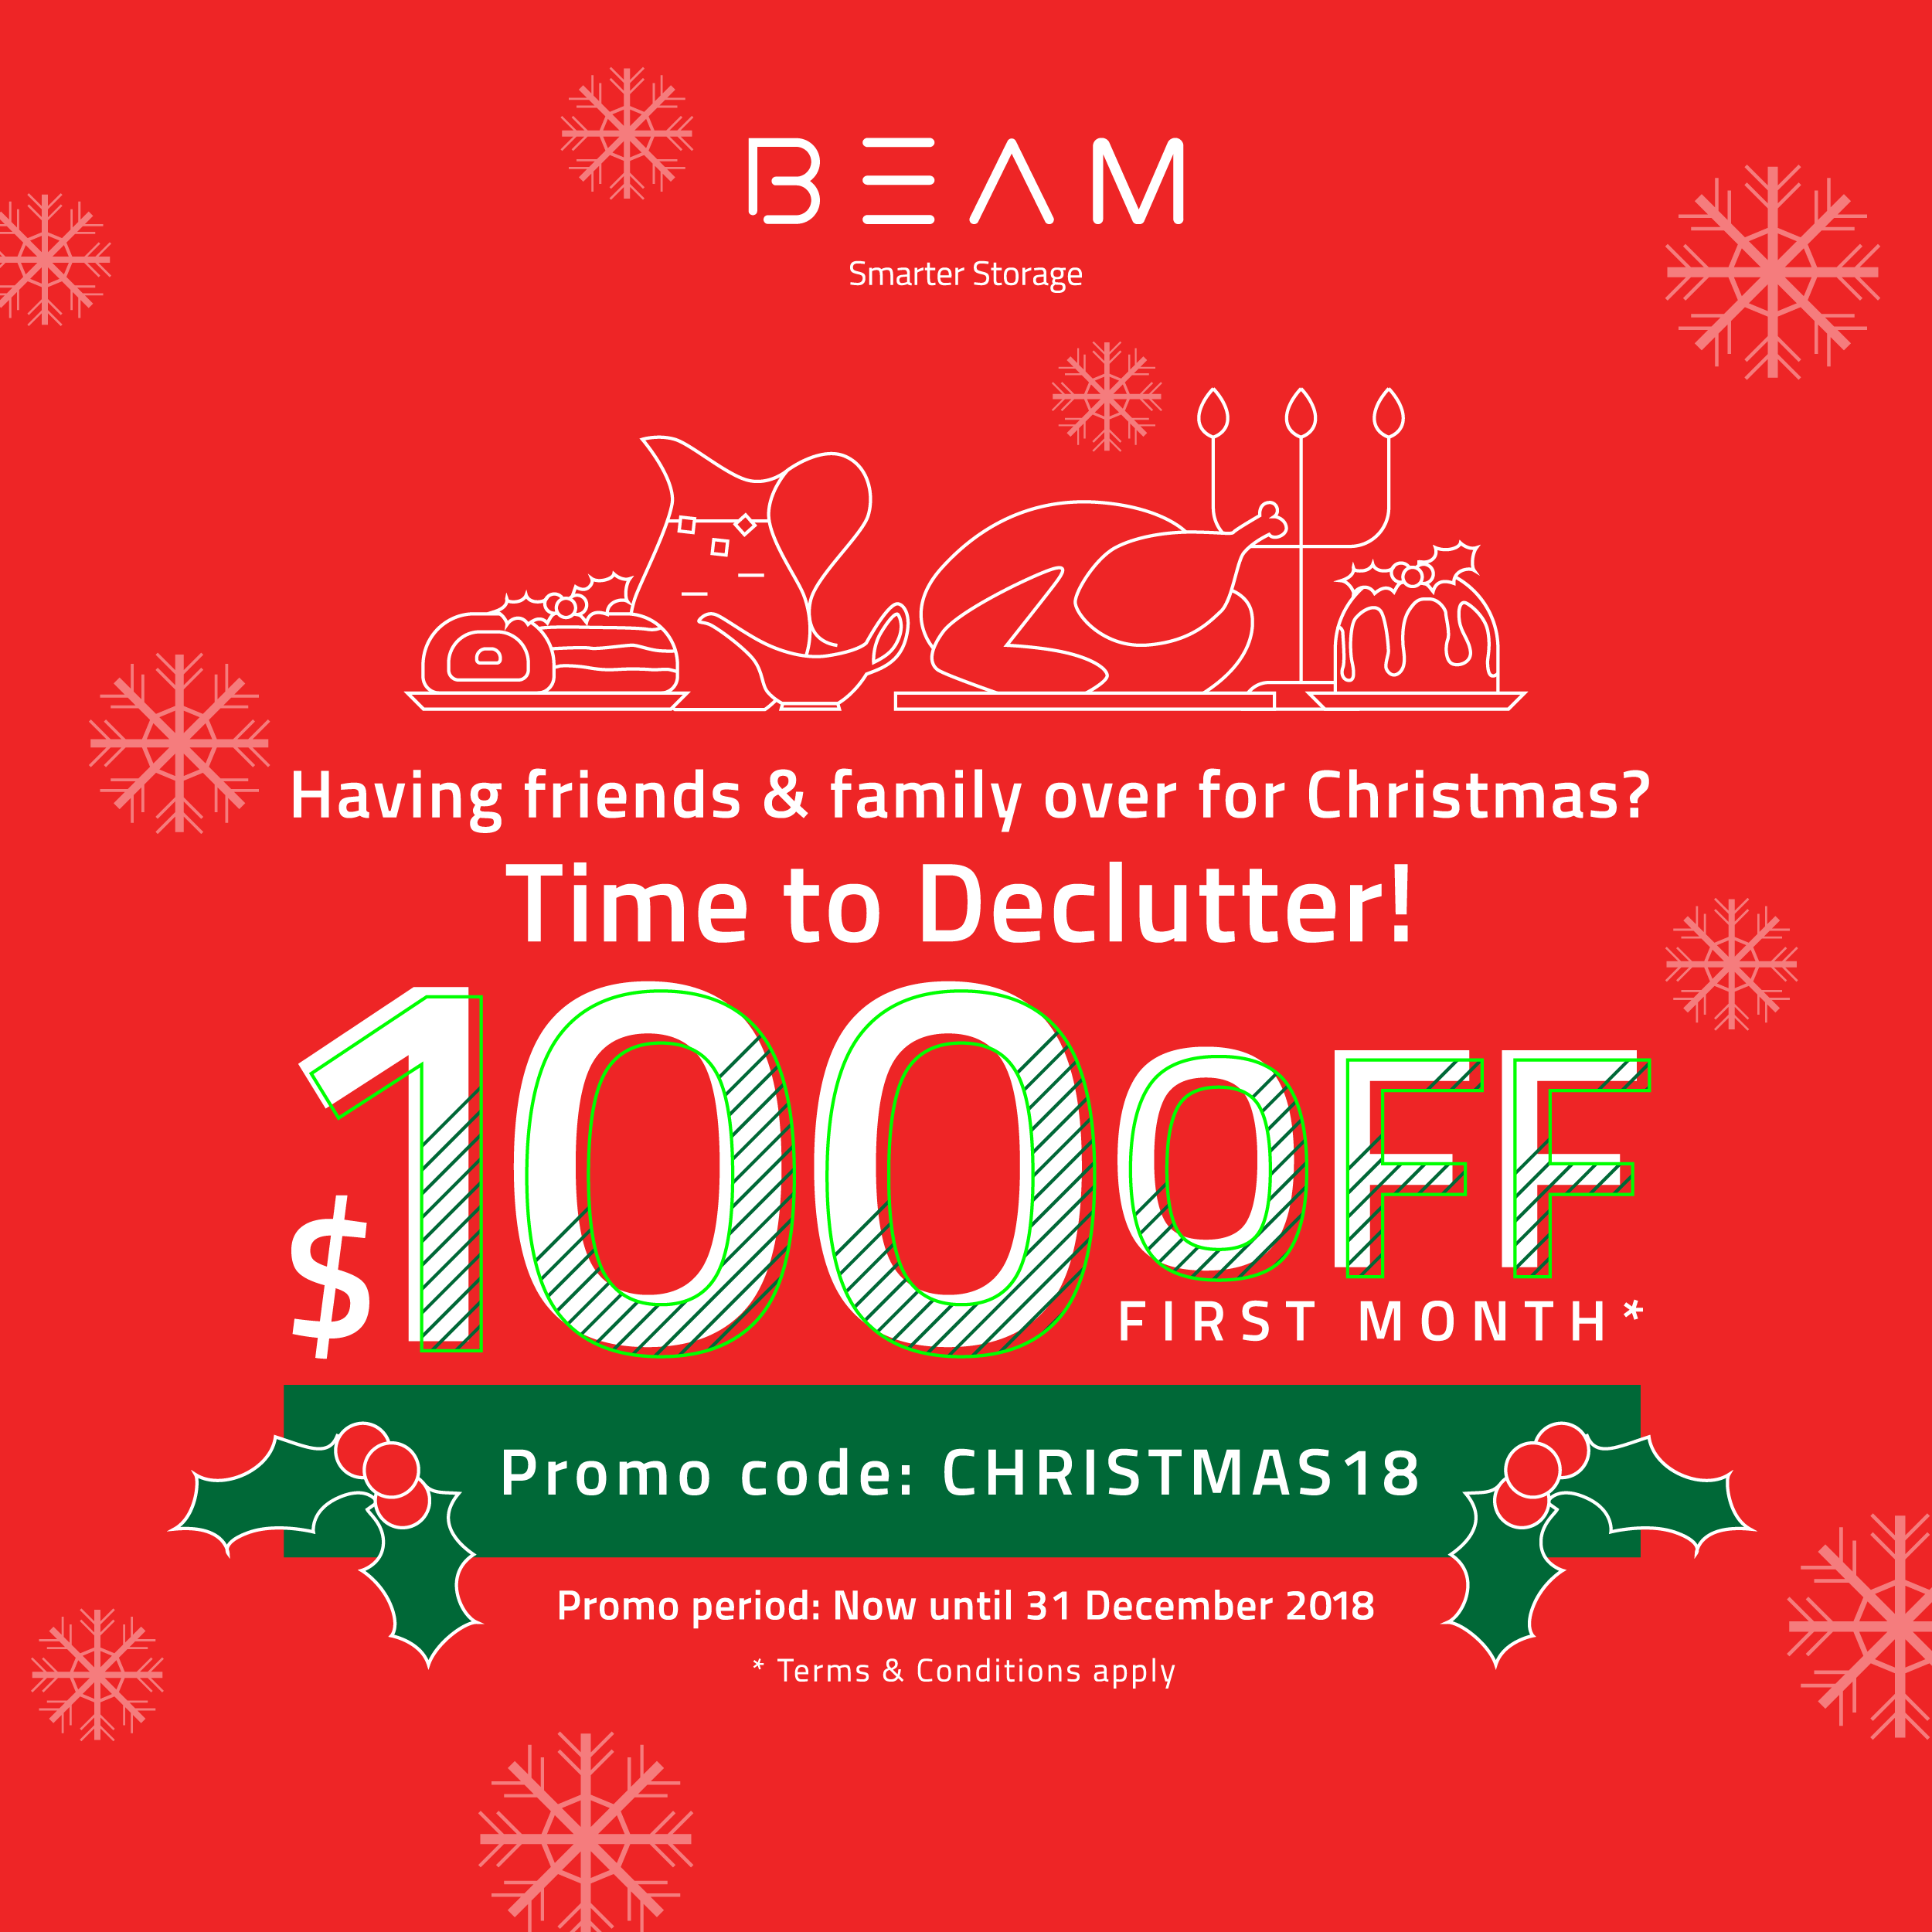 BEAM Storage Christmas 2018 Promotion